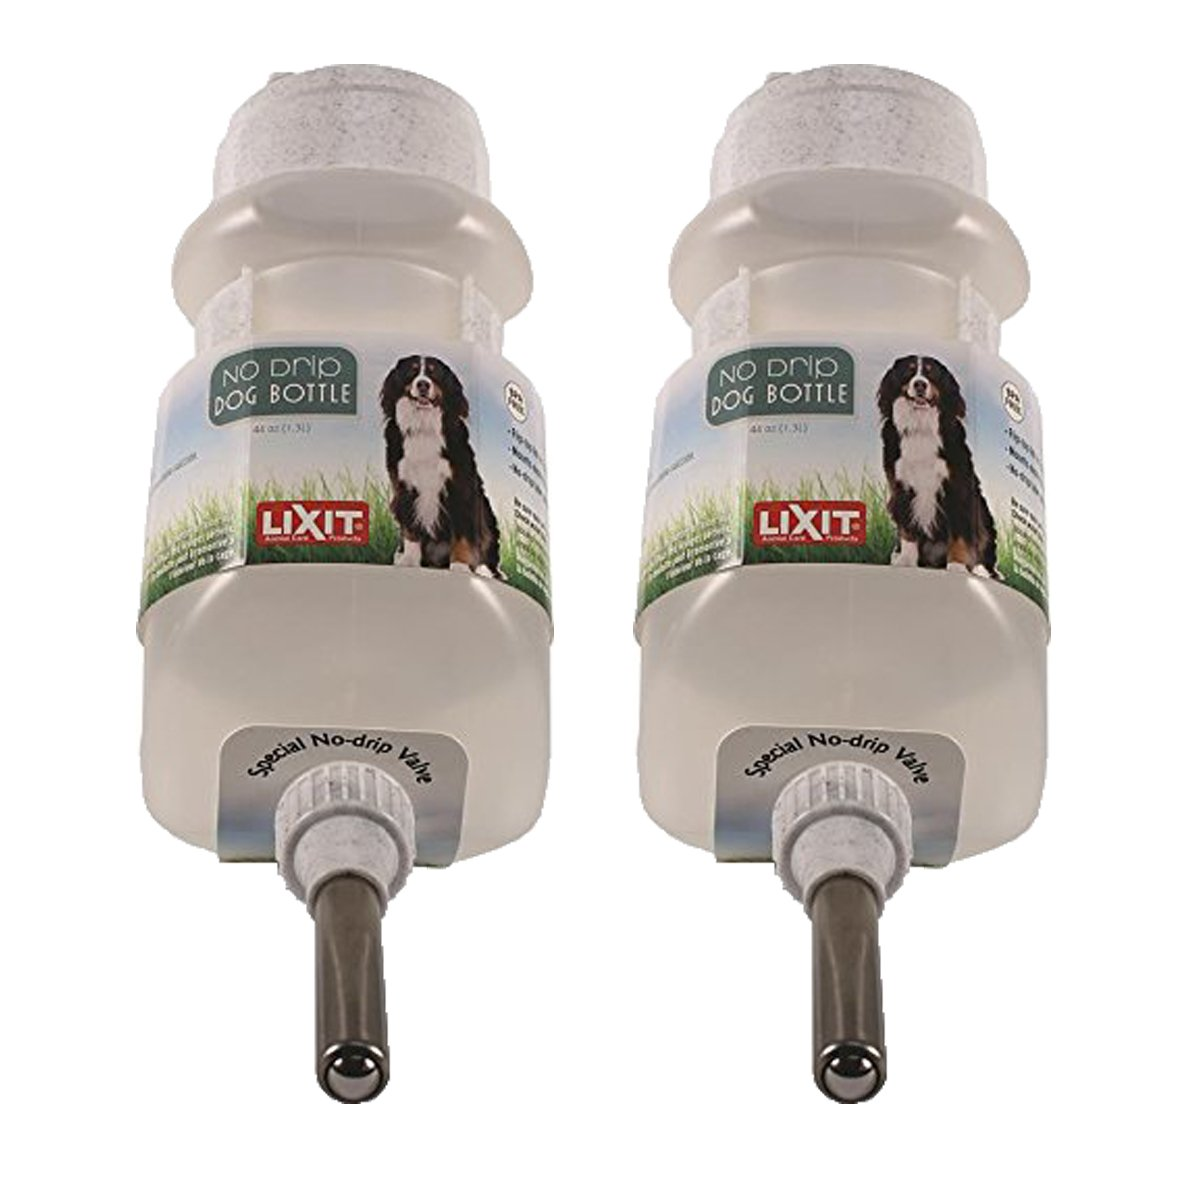 Lixit Top Fill Dog Bottle by Lixit